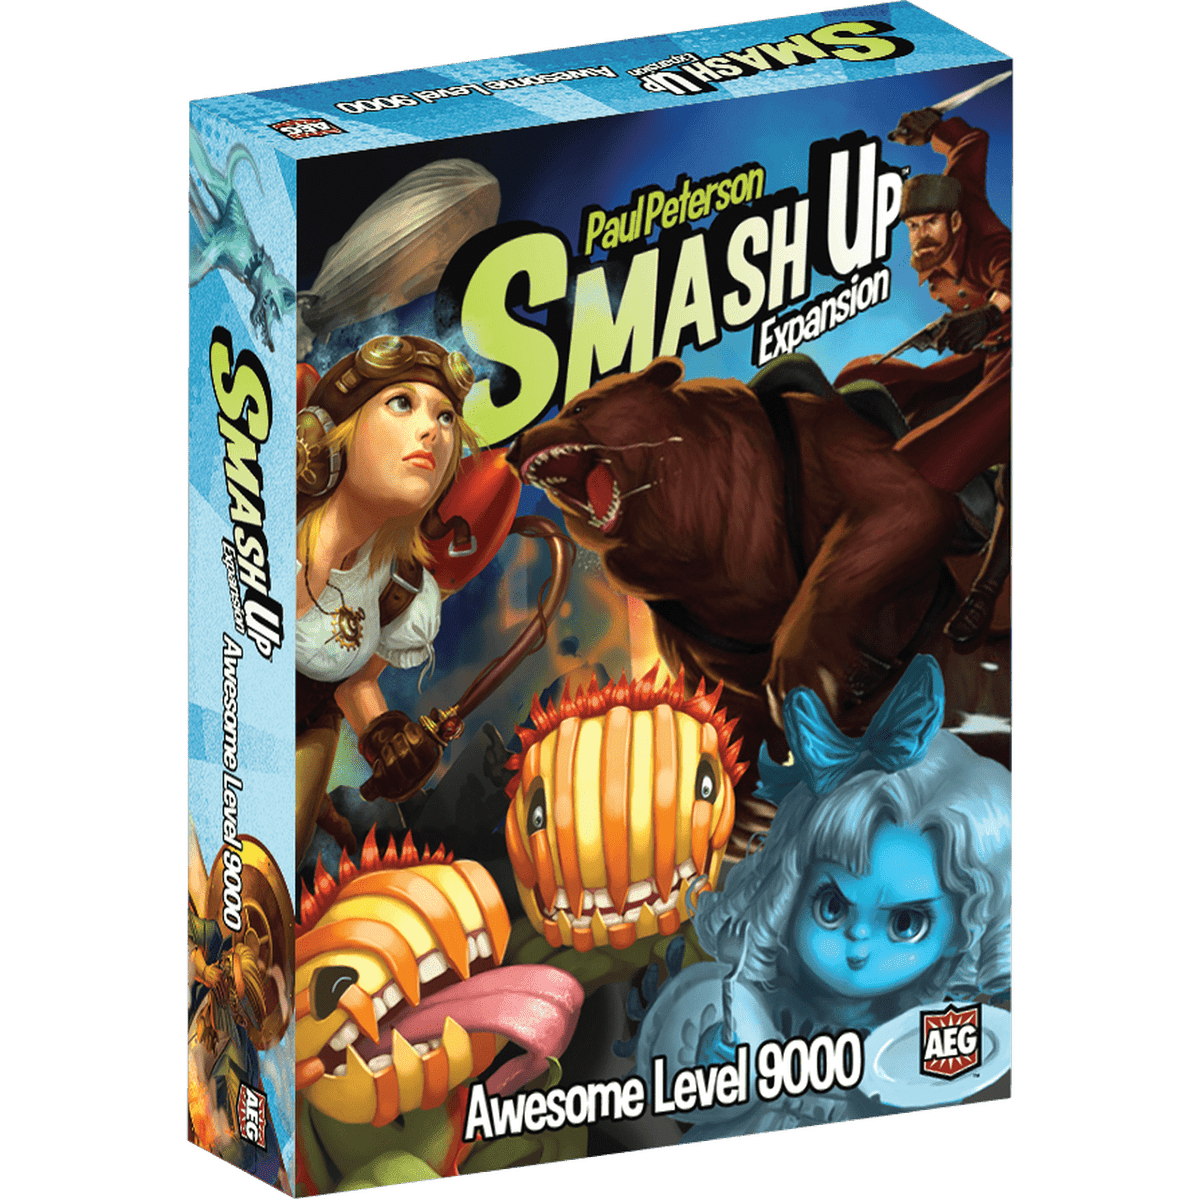 Smash Up: Awesome Level 9000 Expansion Alderac Entertainment Group Board Games